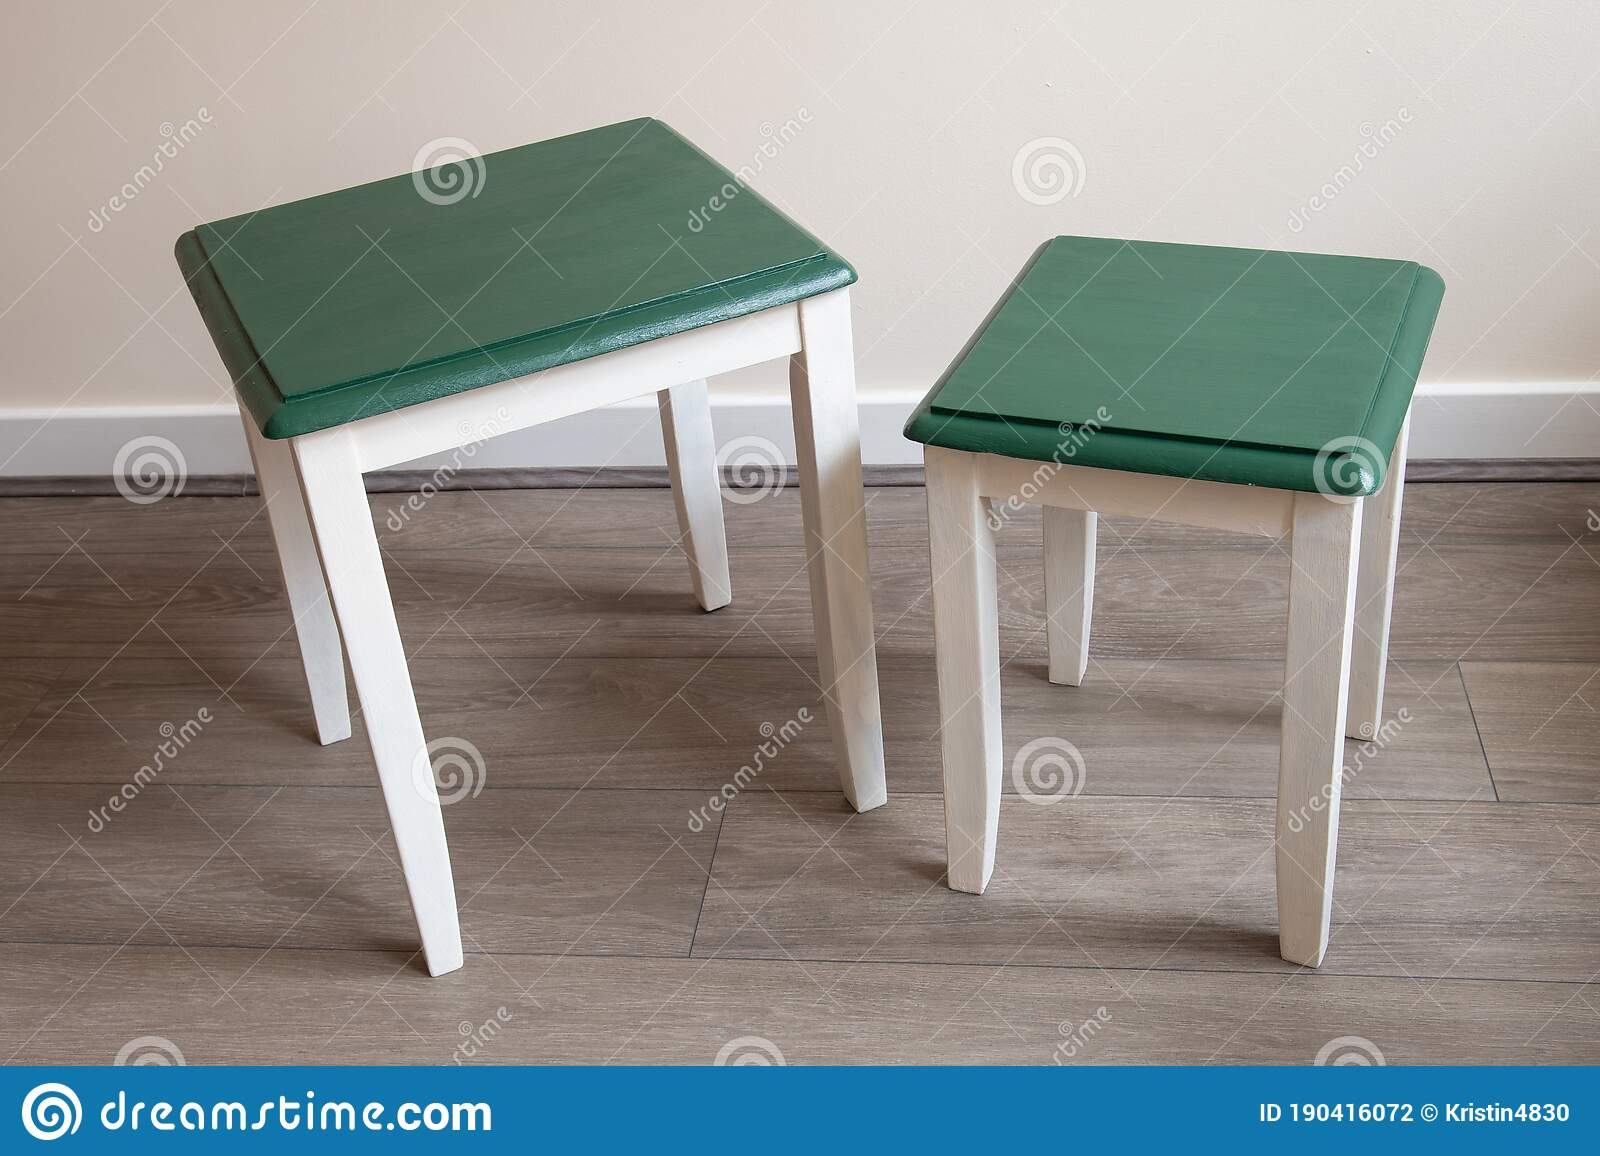 Chalk Furniture Painted Photos Free Royalty Free Stock Photos From Dreamstime